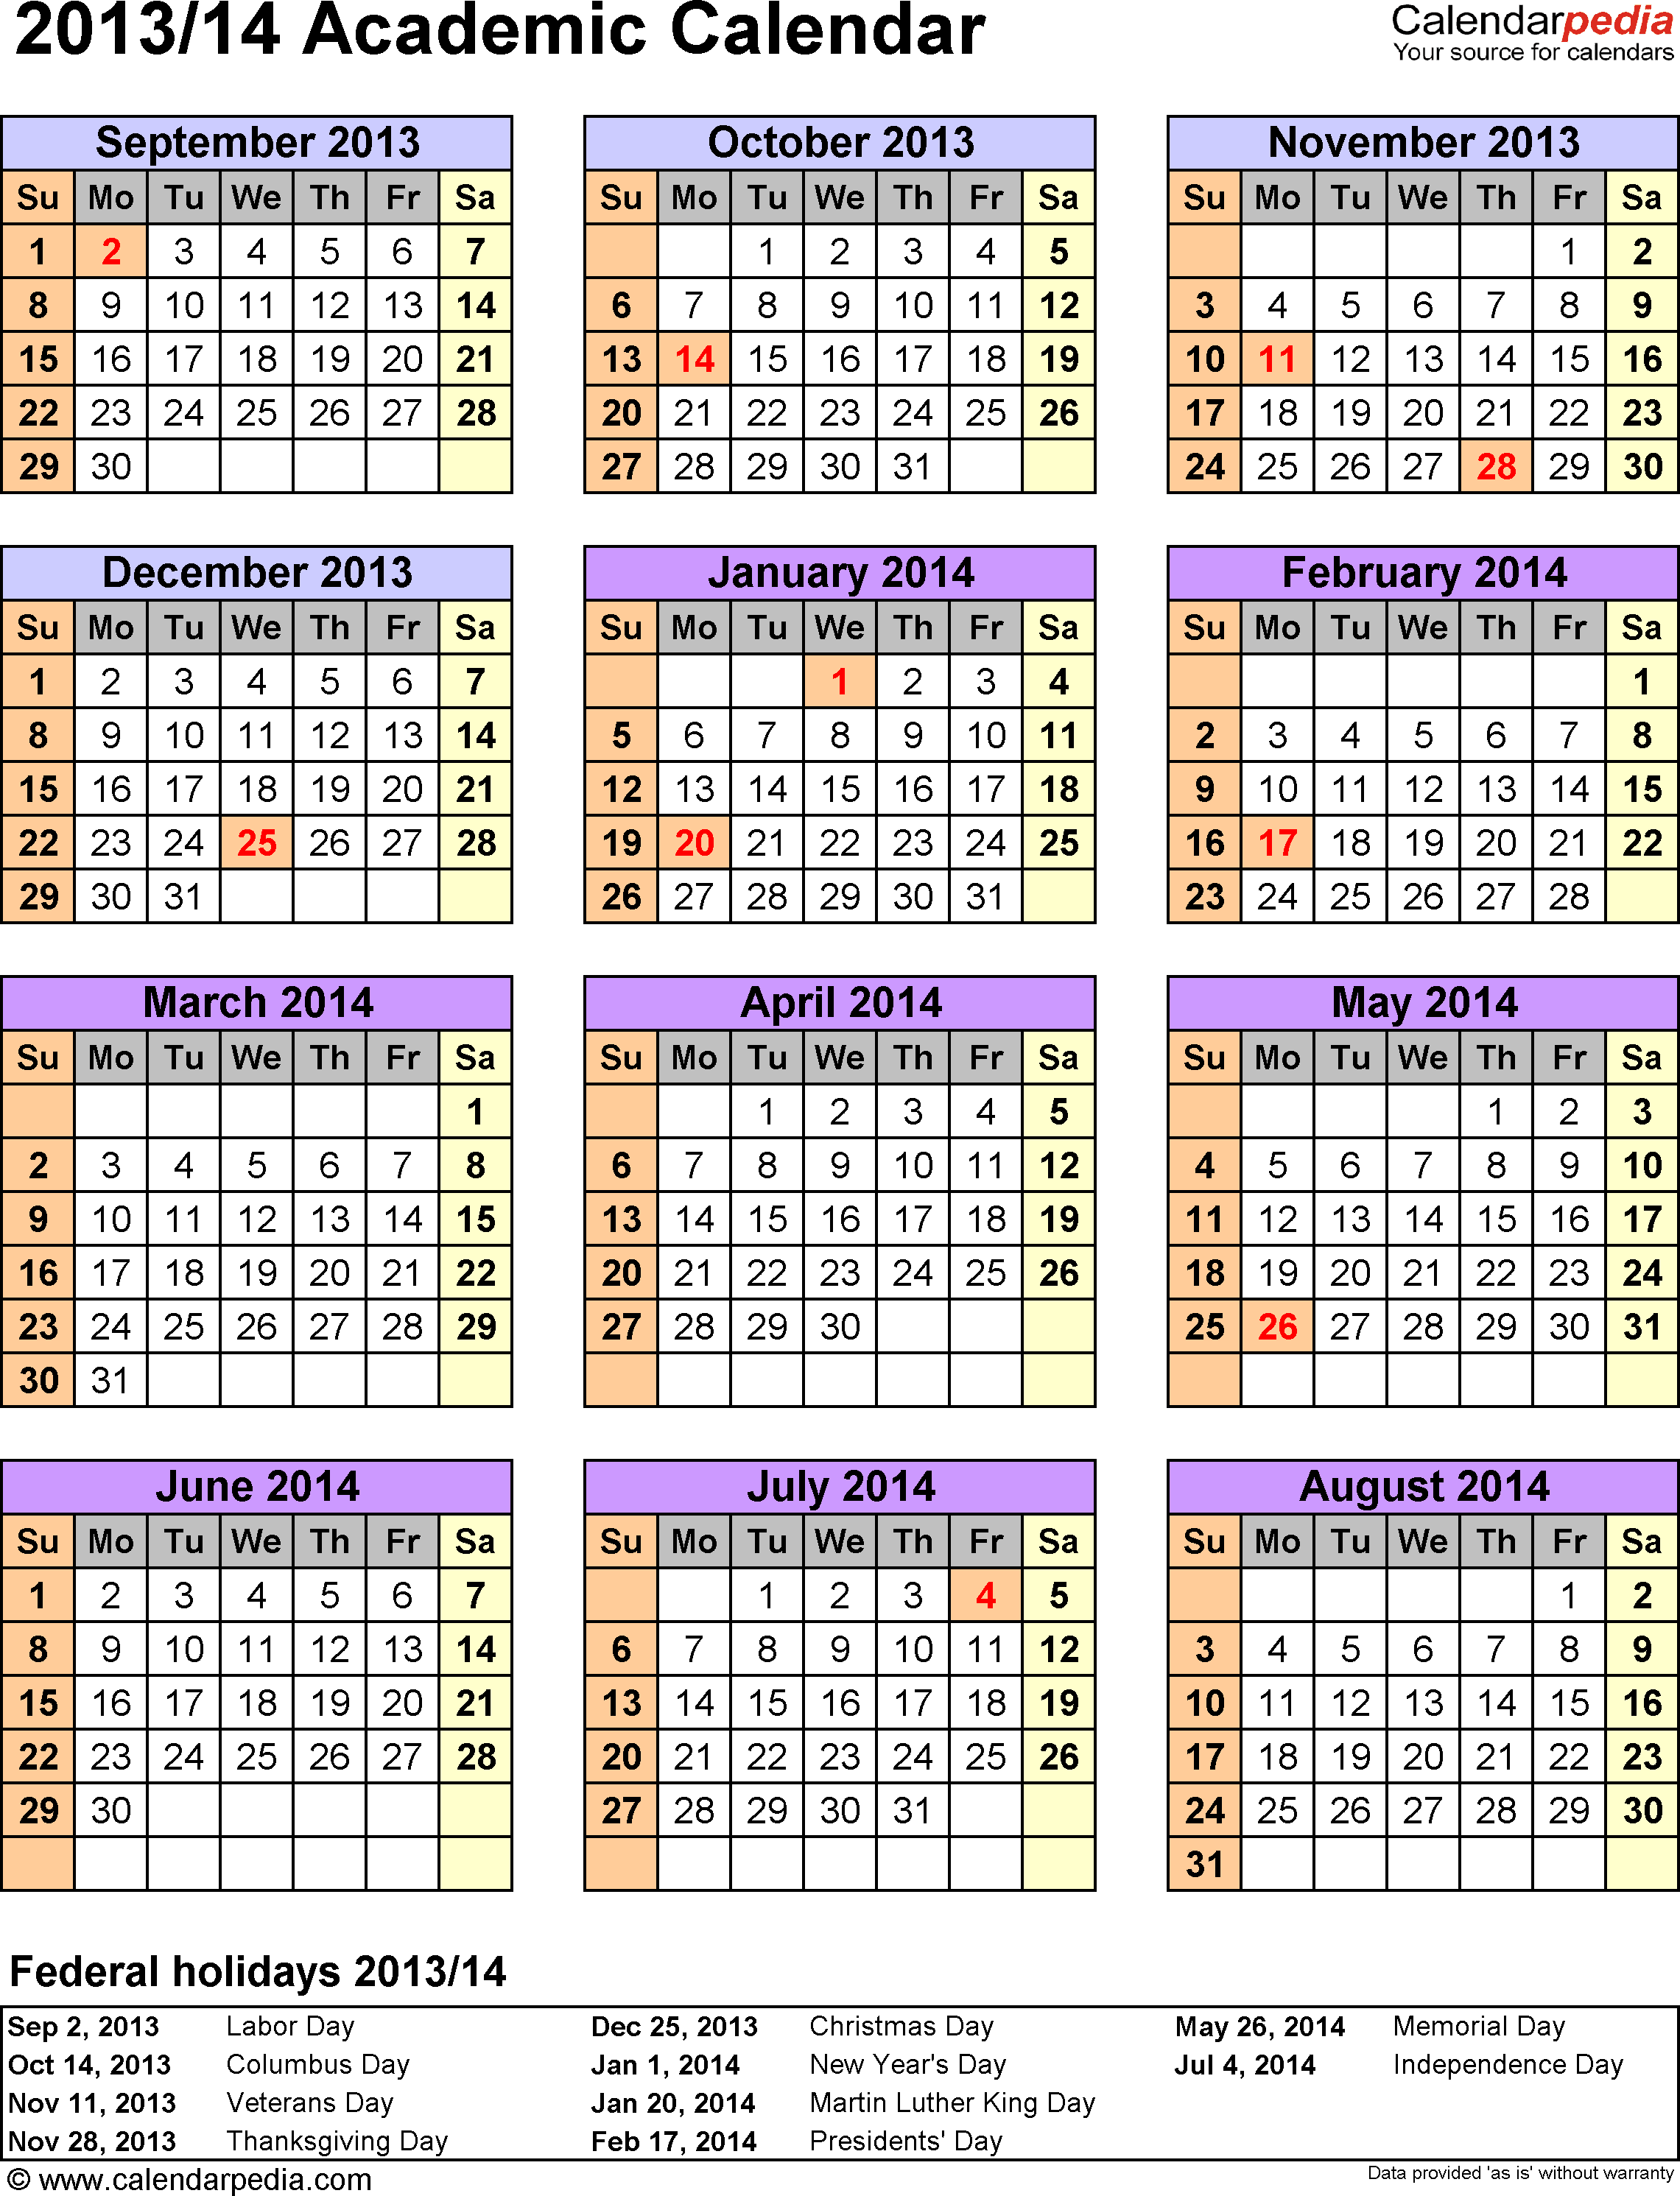 Template 5: Academic calendar 2013/14 for PDF, portrait, 1 page, year at a glance